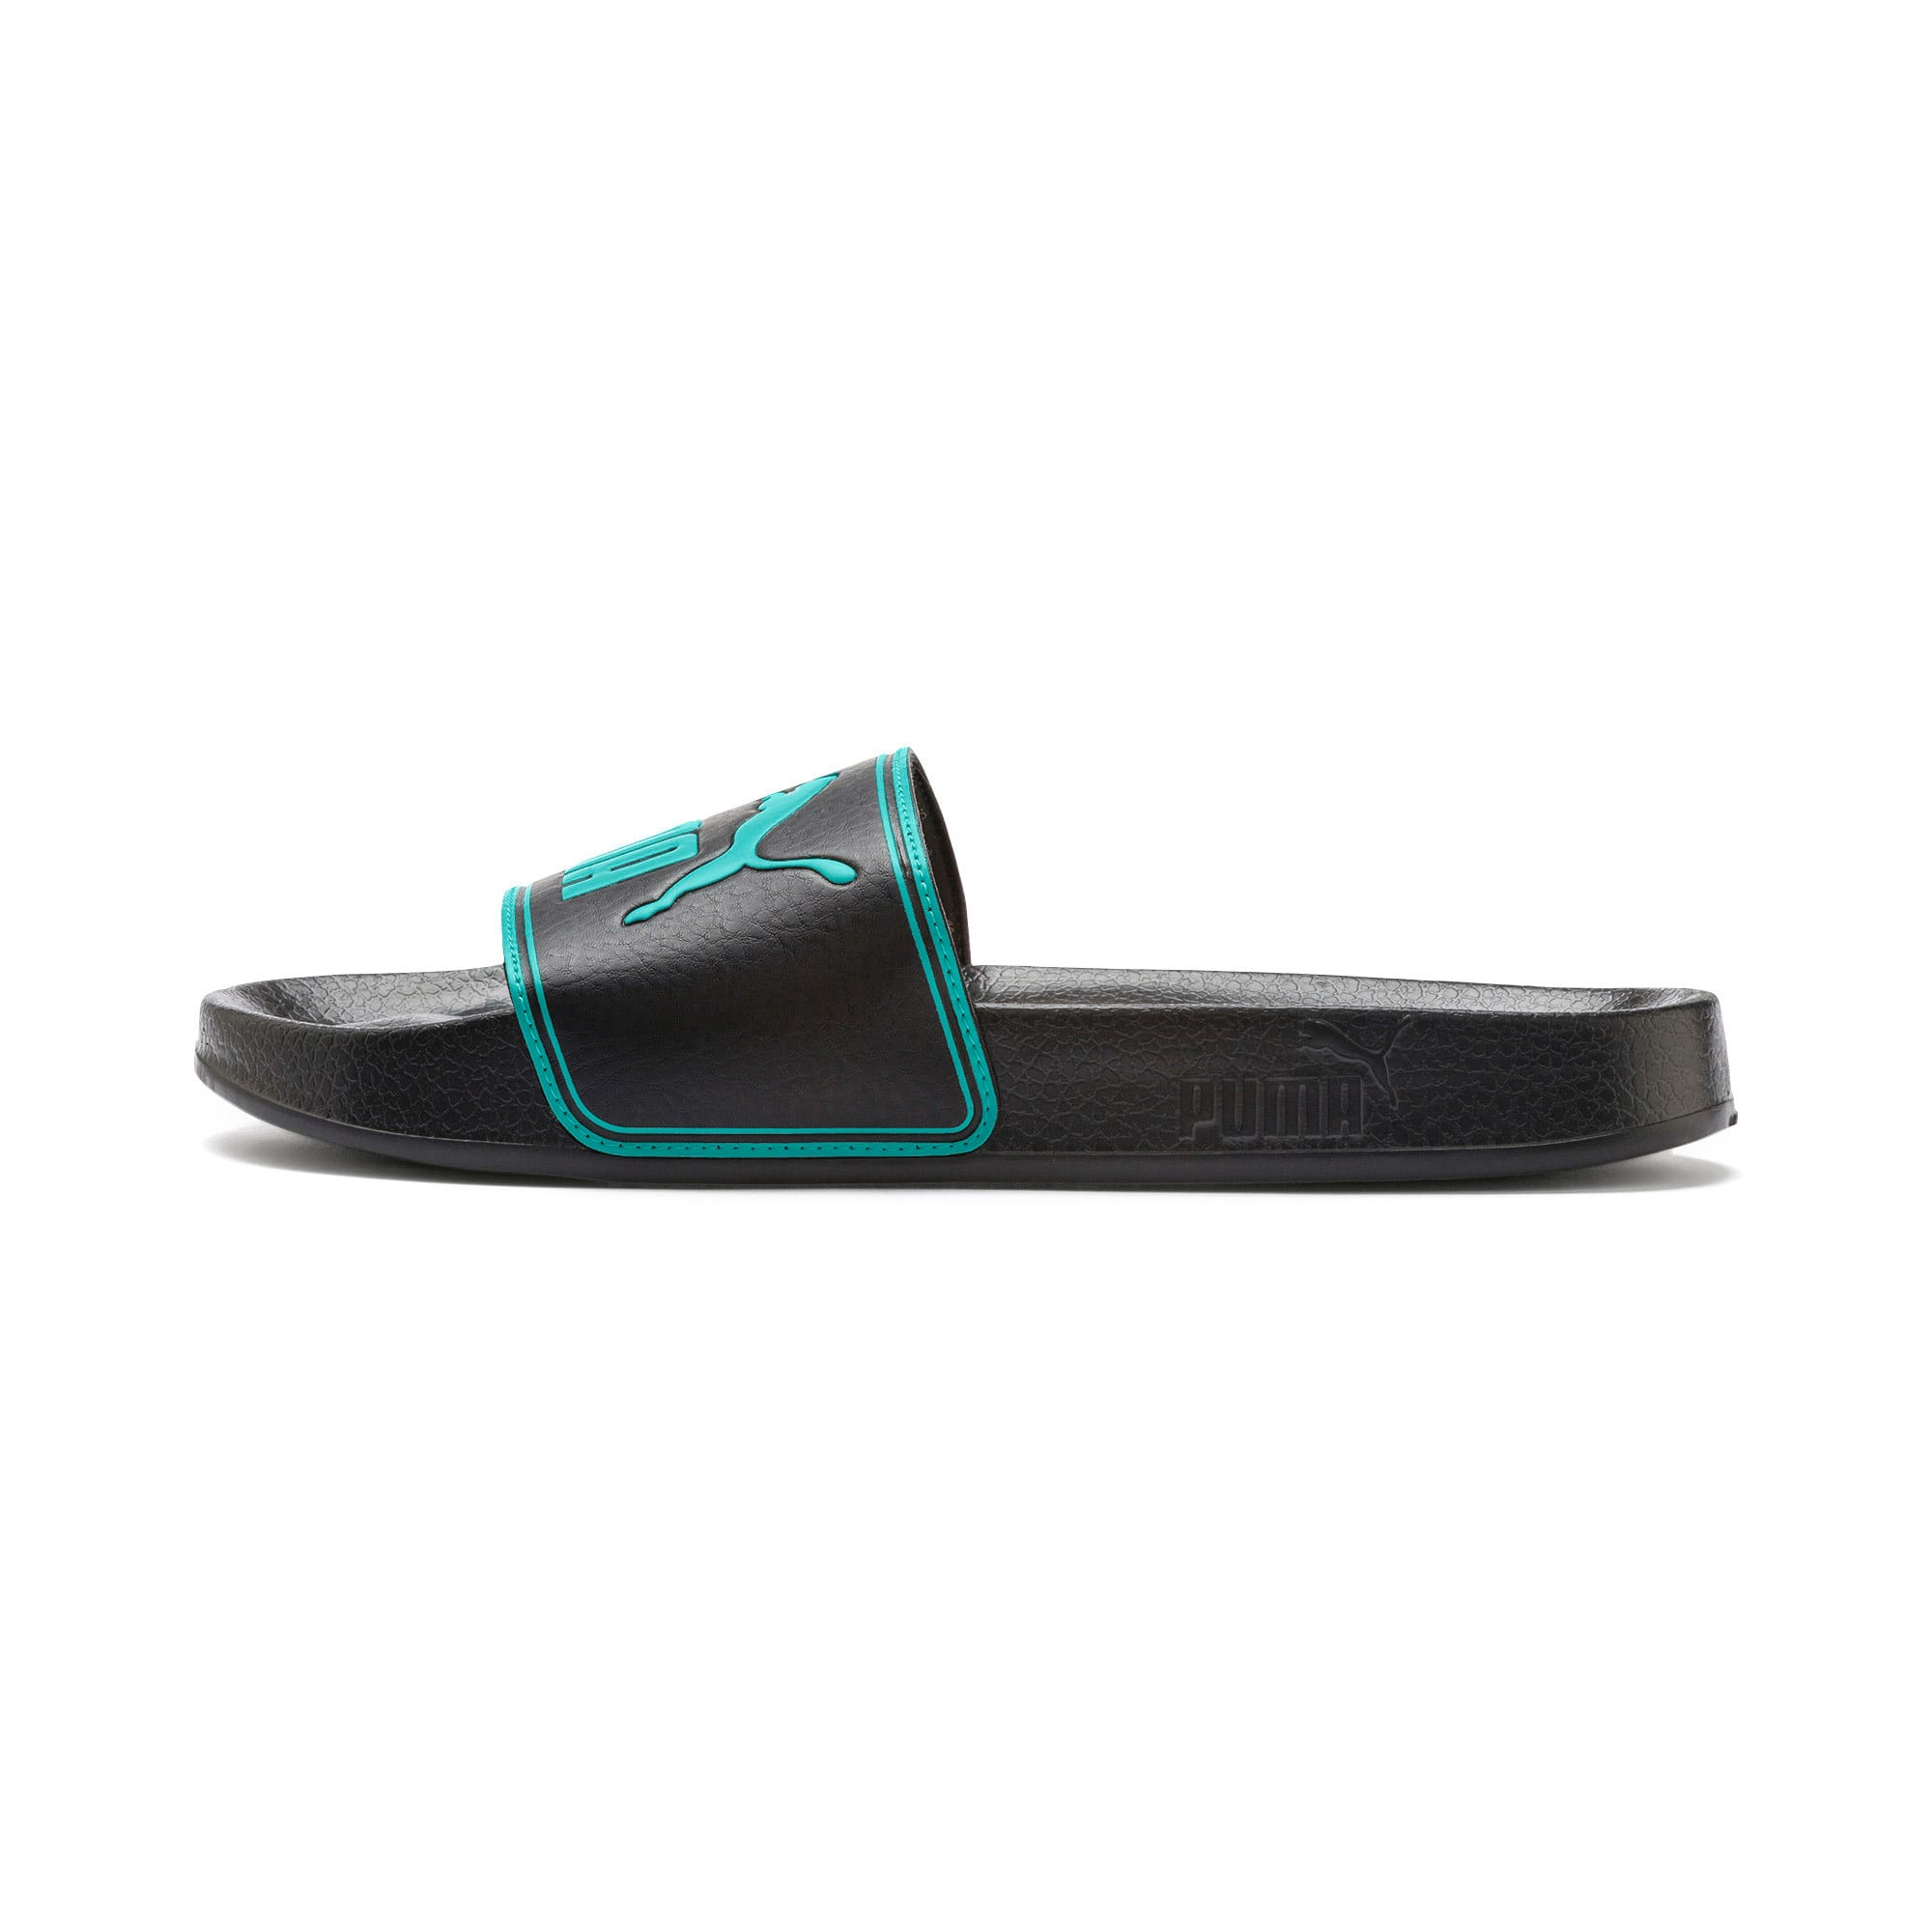 Thumbnail 1 of Leadcat Sandals, Puma Black-Blue Turquoise, medium